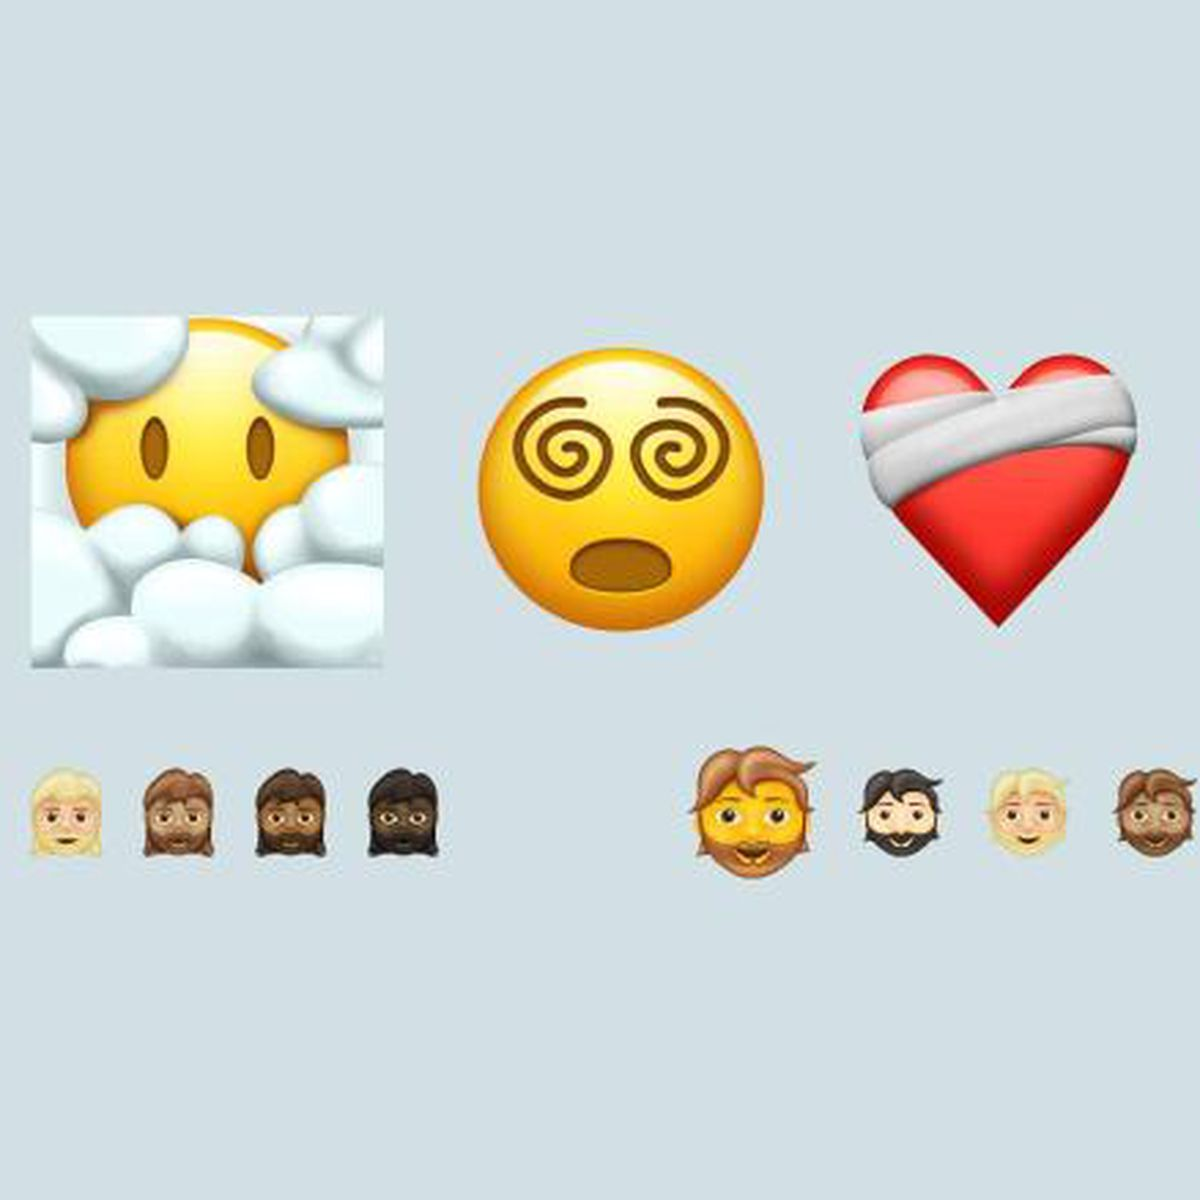 Seven new emojis to be released in 12